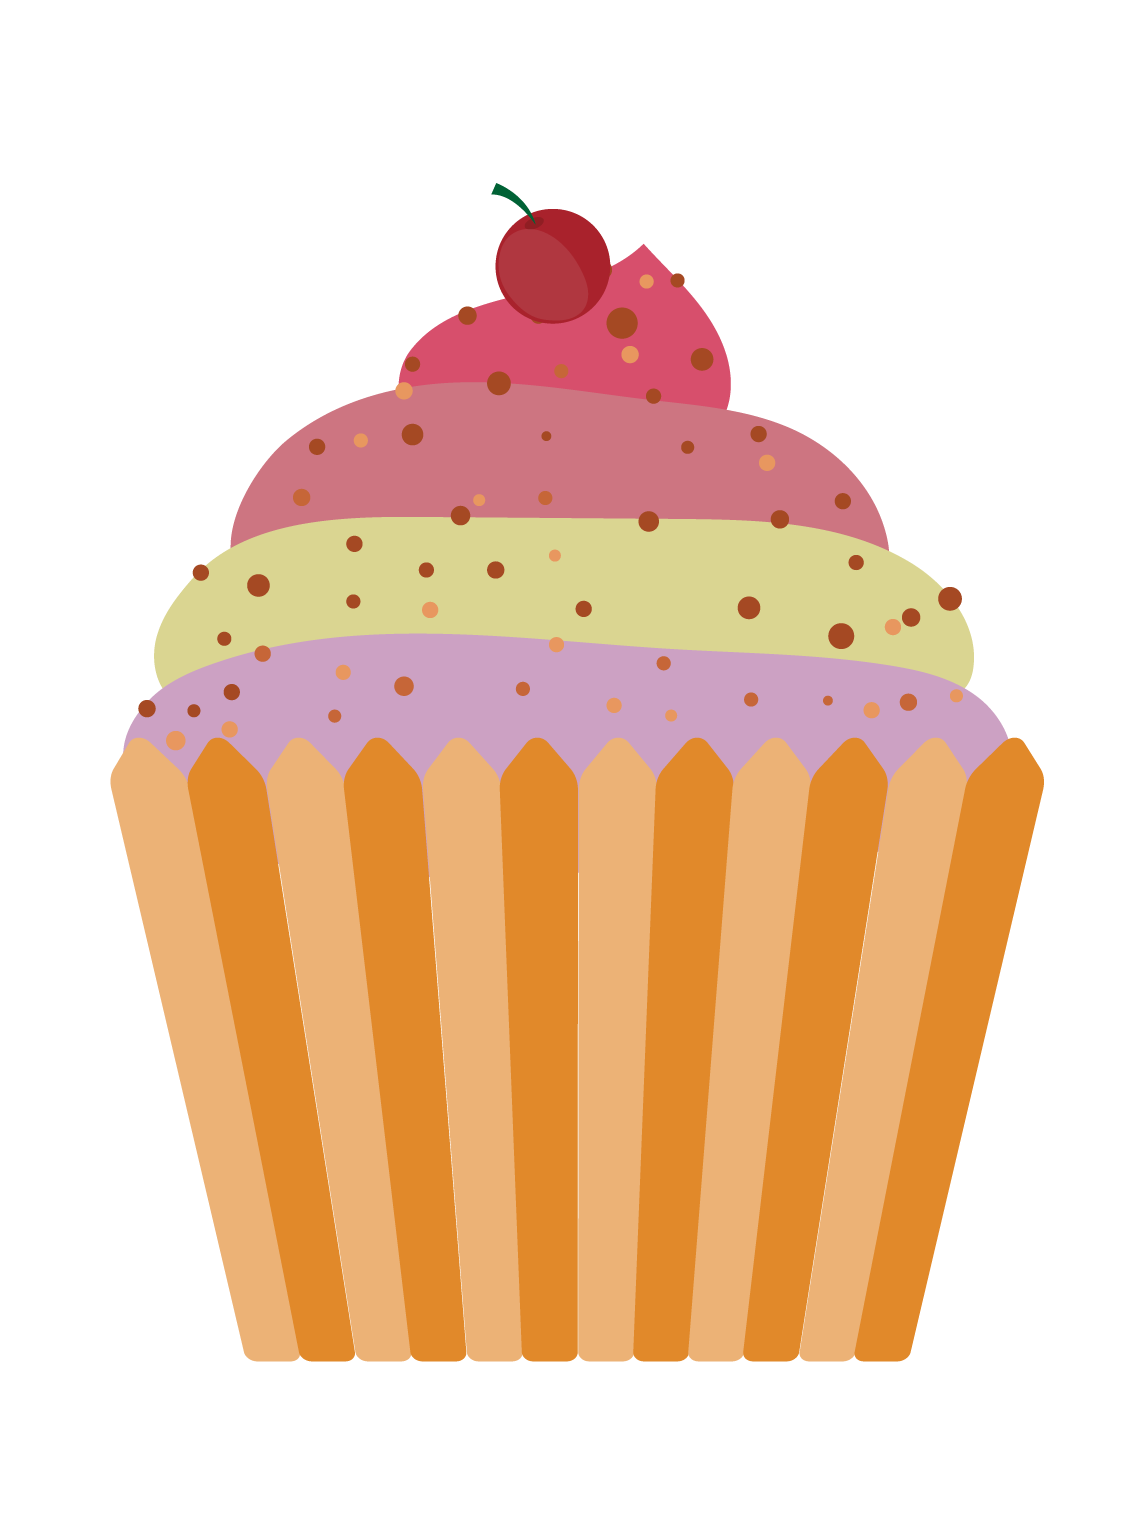 Cupcake image png mydrlynx. Muffin clipart cartoon